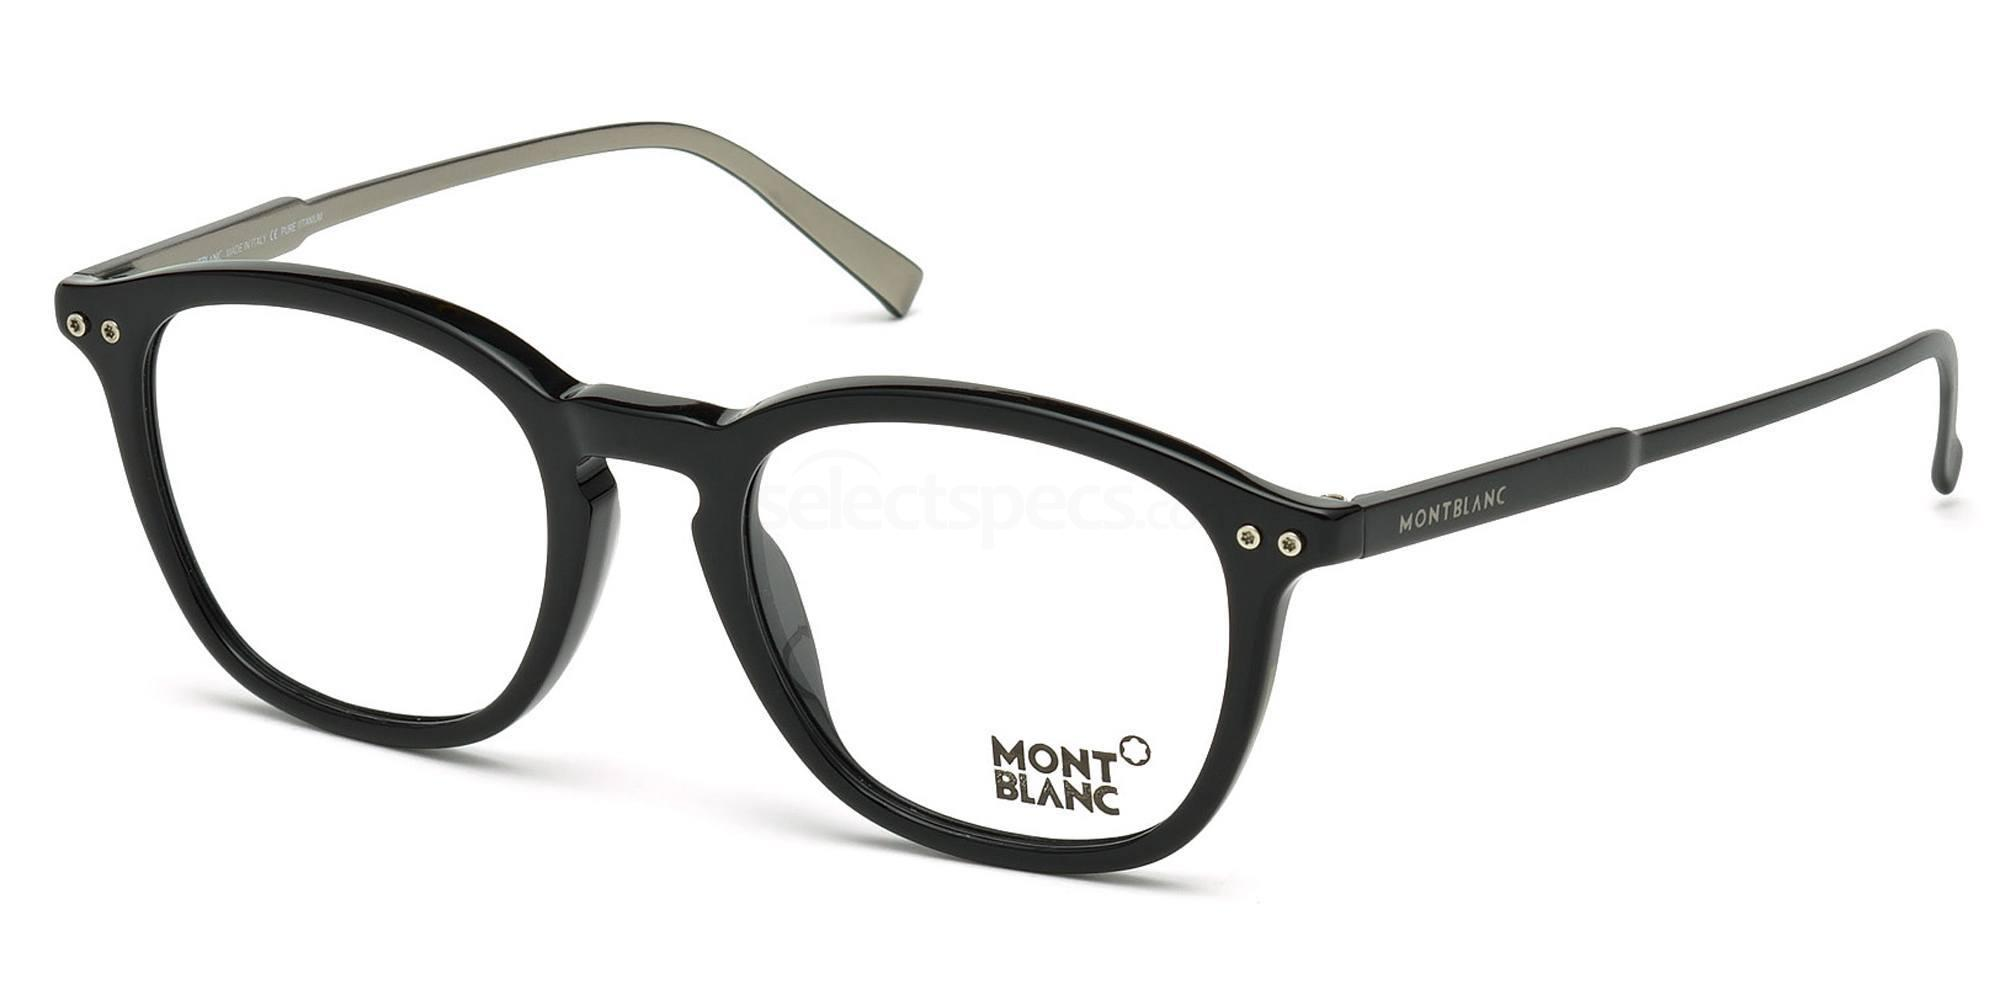 005 MB0614 Glasses, Mont Blanc